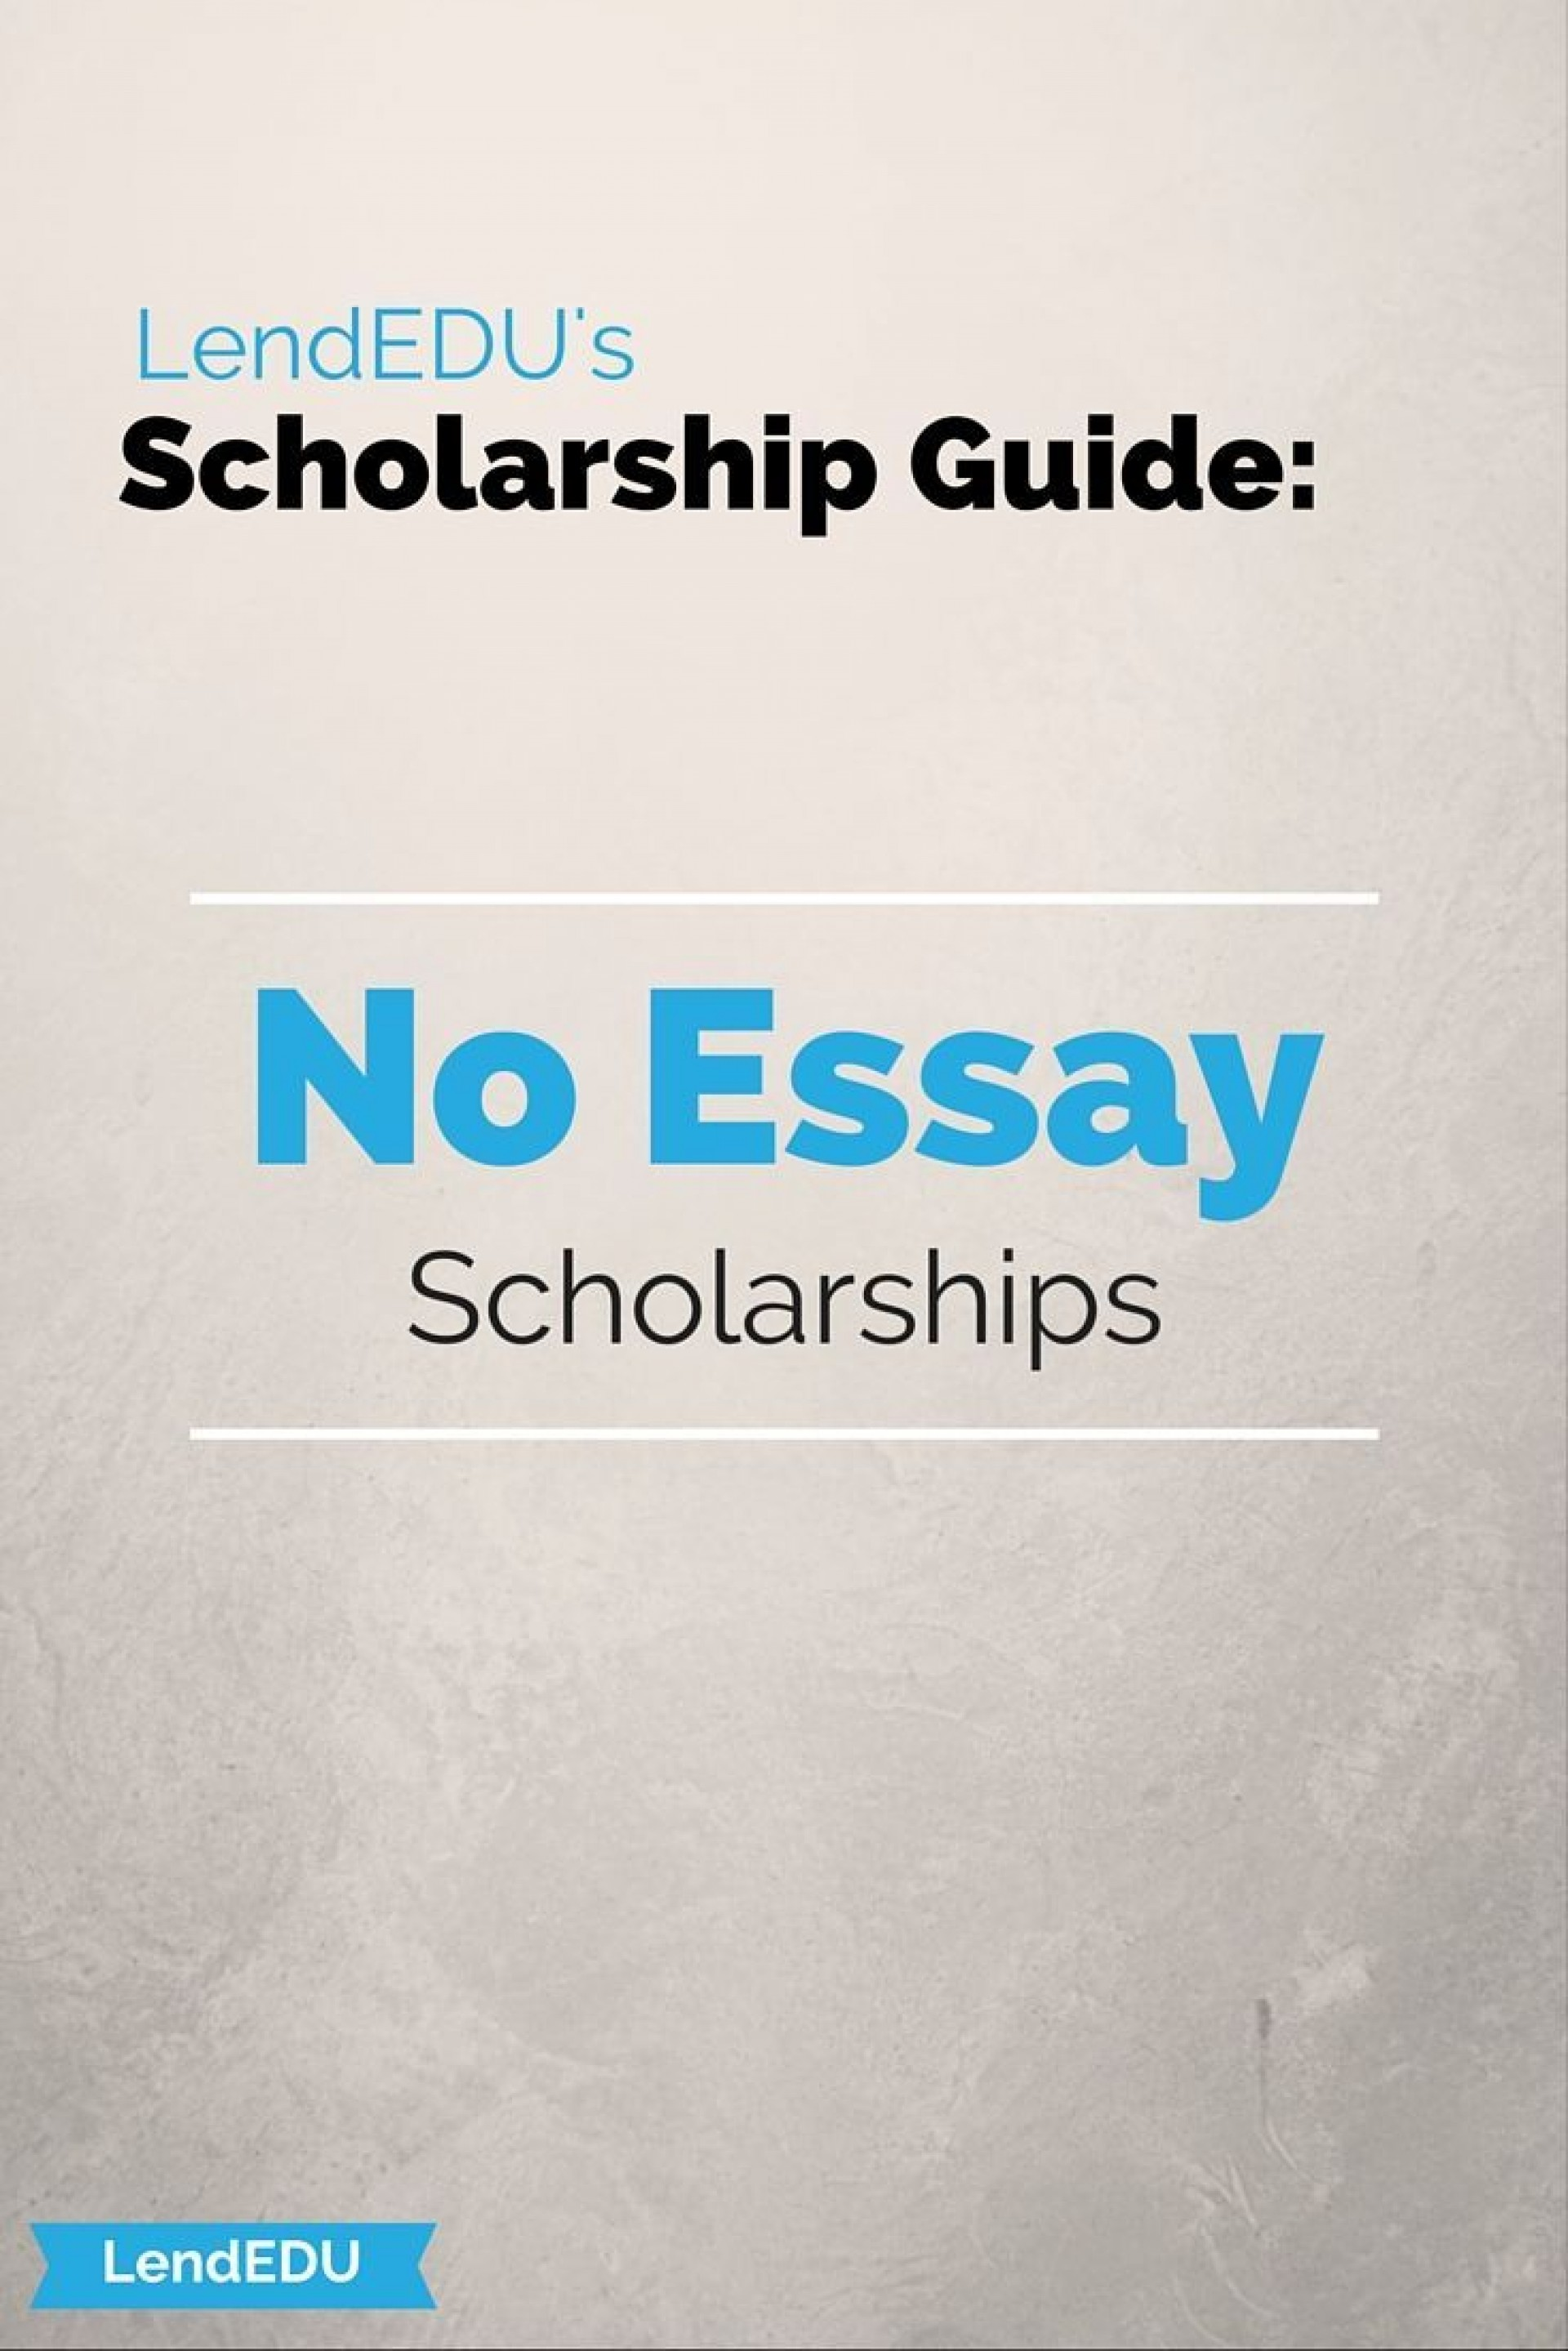 008 Essay Example No Scholarships Singular 2016 1920